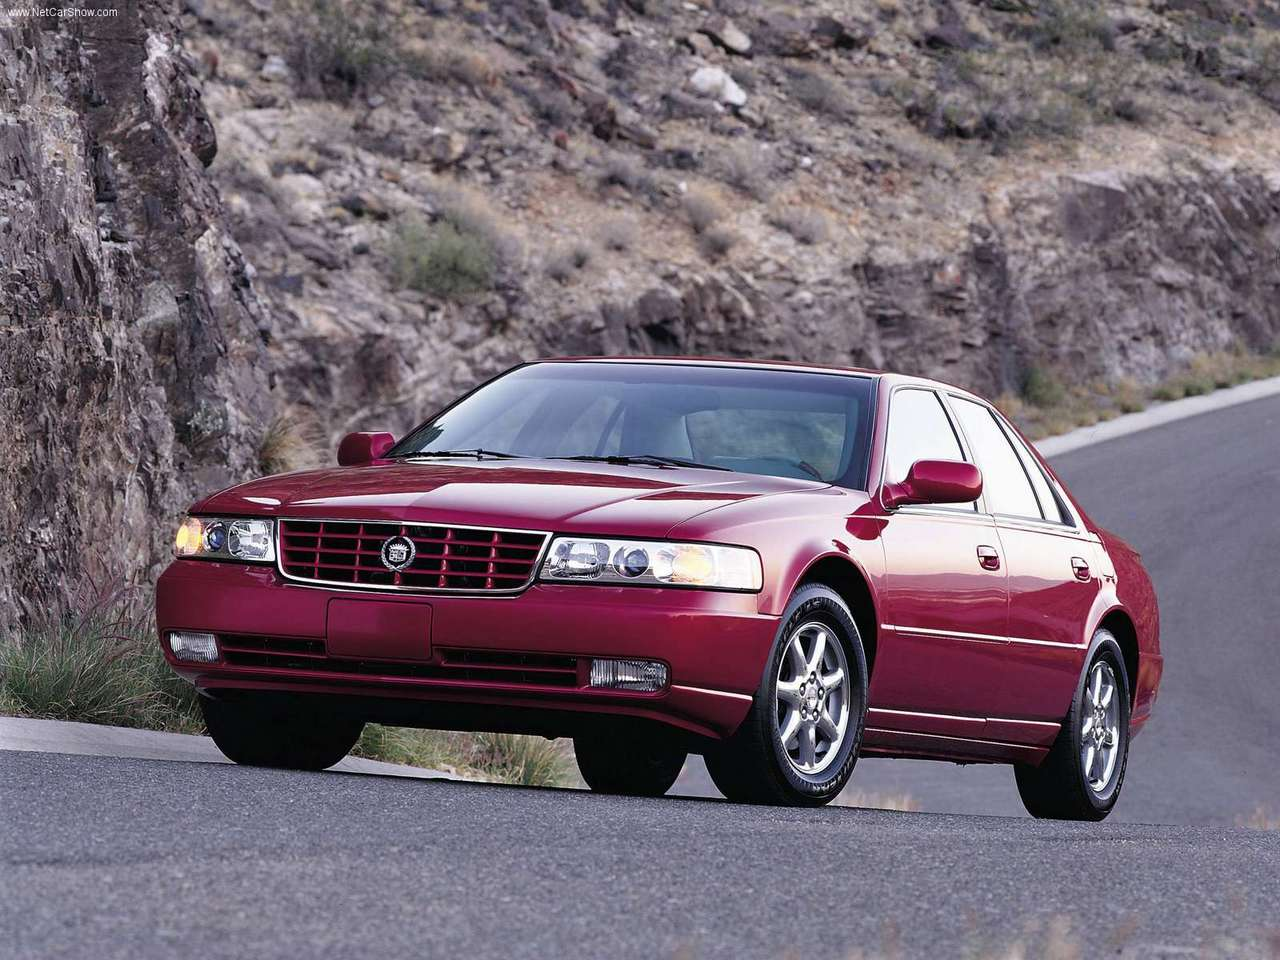 2000 cadillac seville sts. Cars Review. Best American Auto & Cars Review